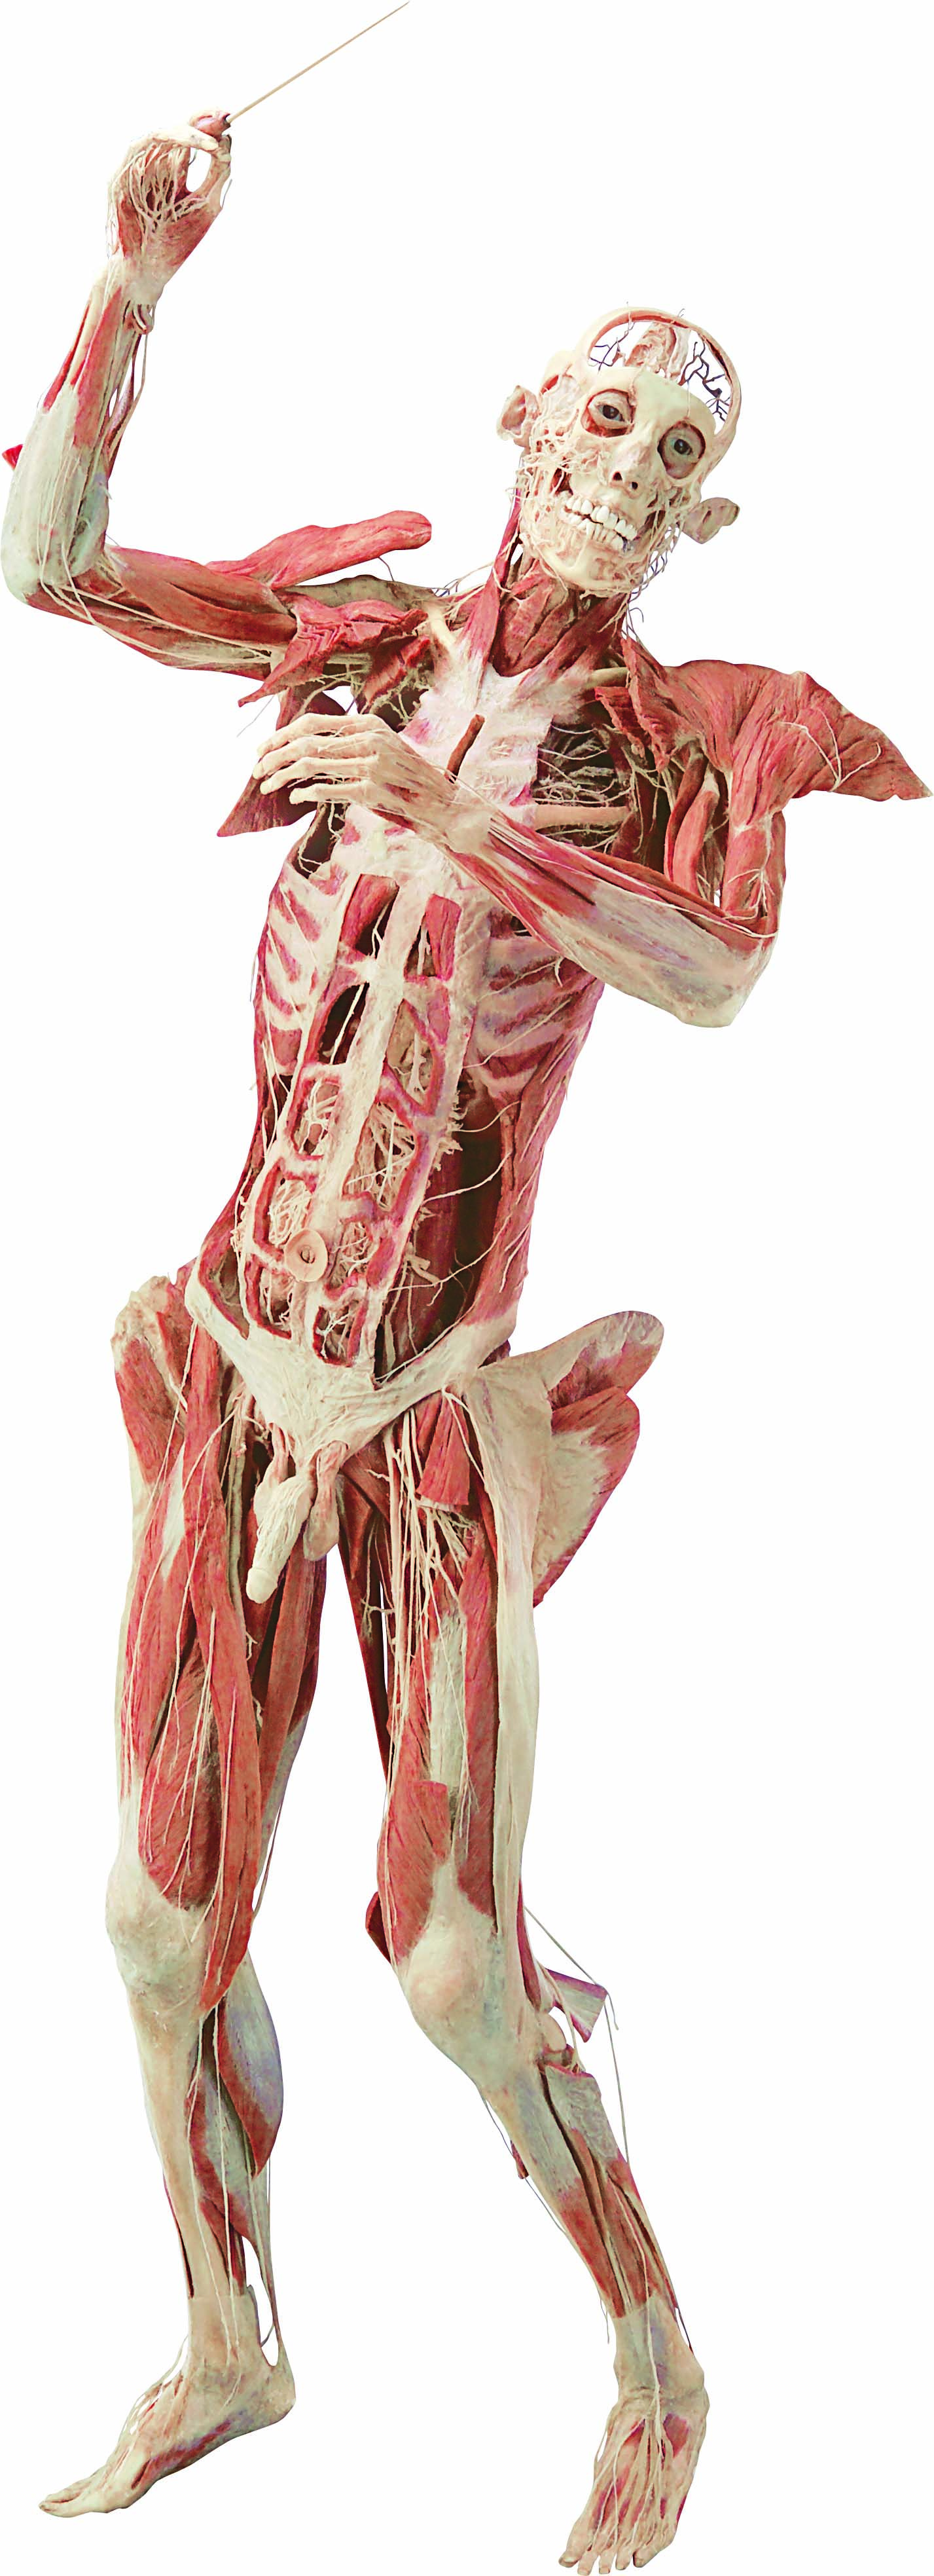 bodies exhibit essay Each body system was addressed in its own individual exhibit, starting with the skeletal system and progressing through the muscular, nervous, circulatory, digestive, respiratory, urinary, and reproductive systems plus an exhibit on fetal development.